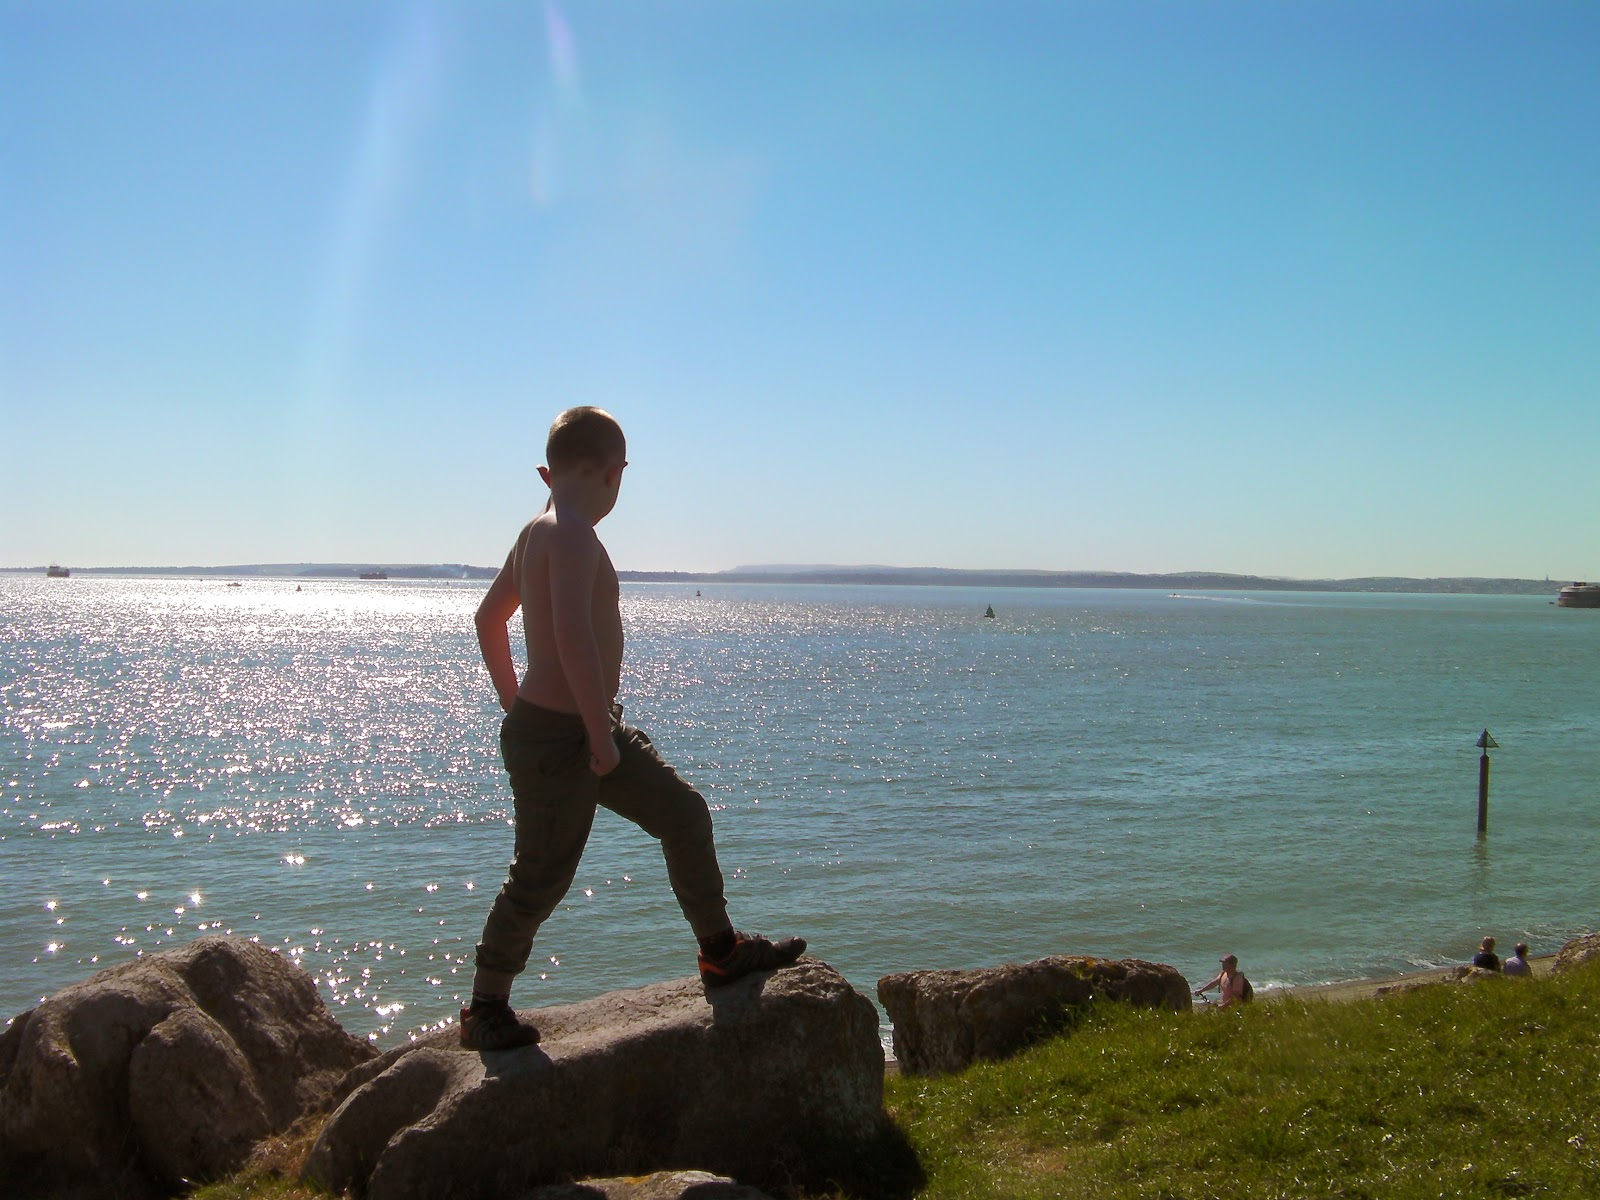 shirtless boy admires calm sea view and cloudless sky